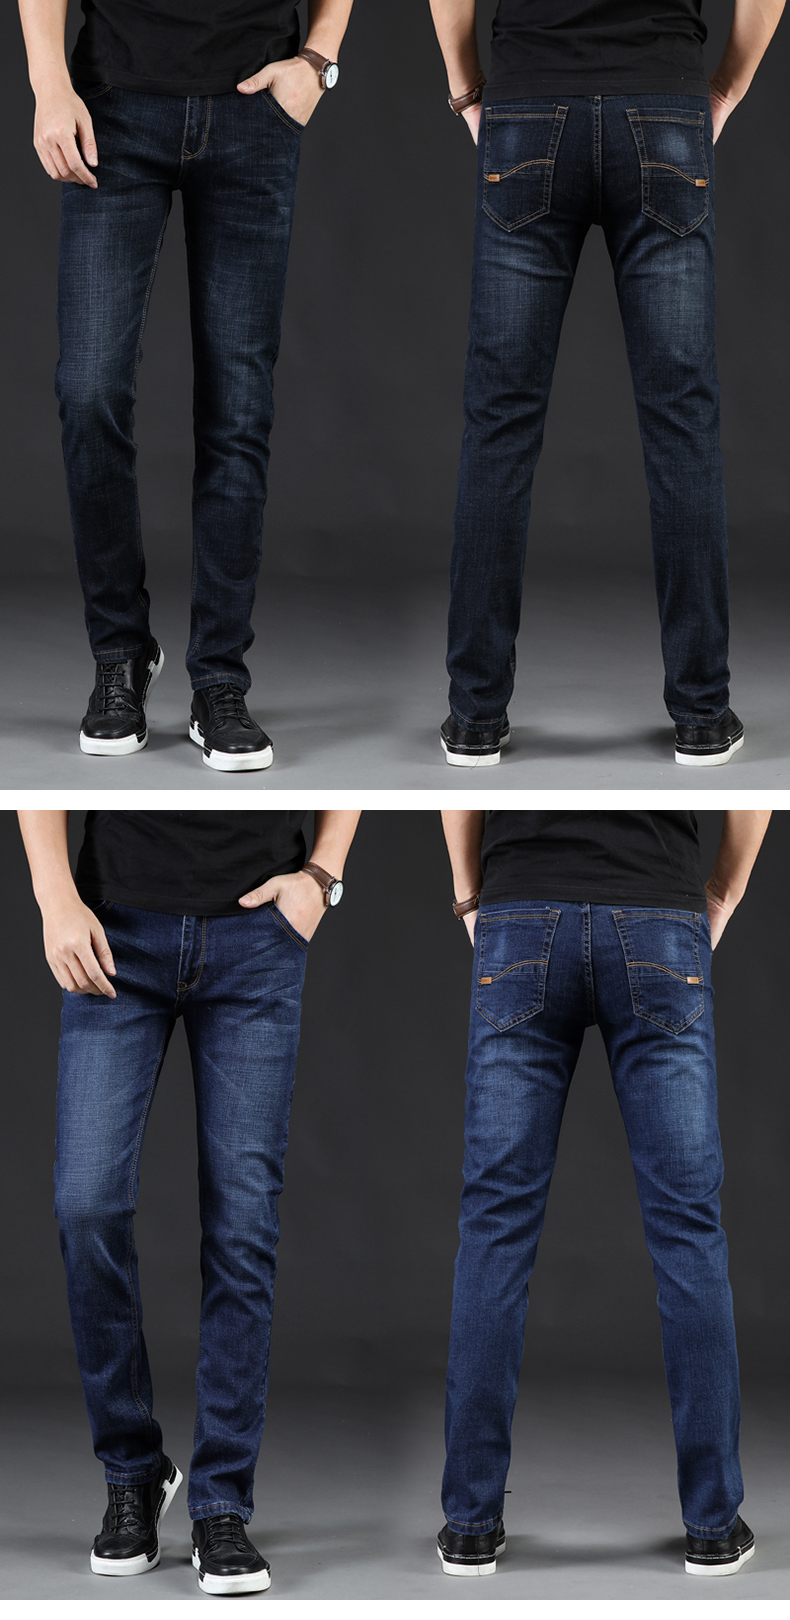 KSTUN Men Jeans Business Casual Straight Slim Fit Blue Black 2019 Denim Pants Trousers Classic